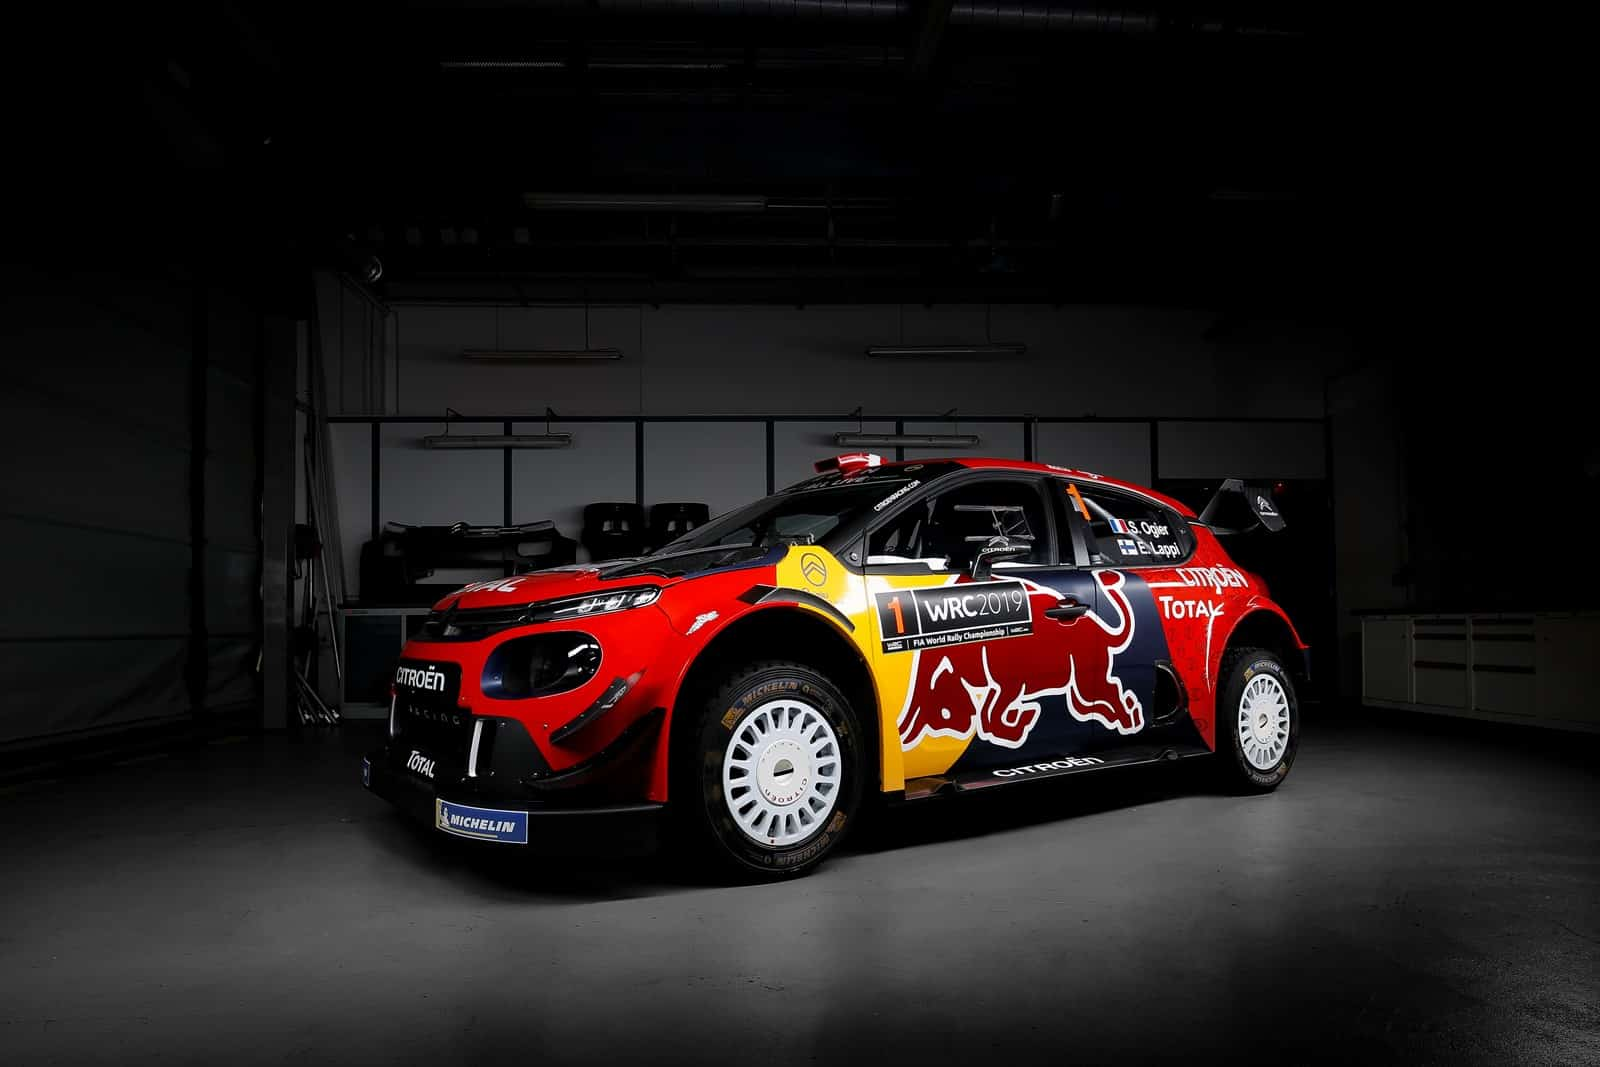 citro n total world rally team presenta el c3 wrc para 2019. Black Bedroom Furniture Sets. Home Design Ideas